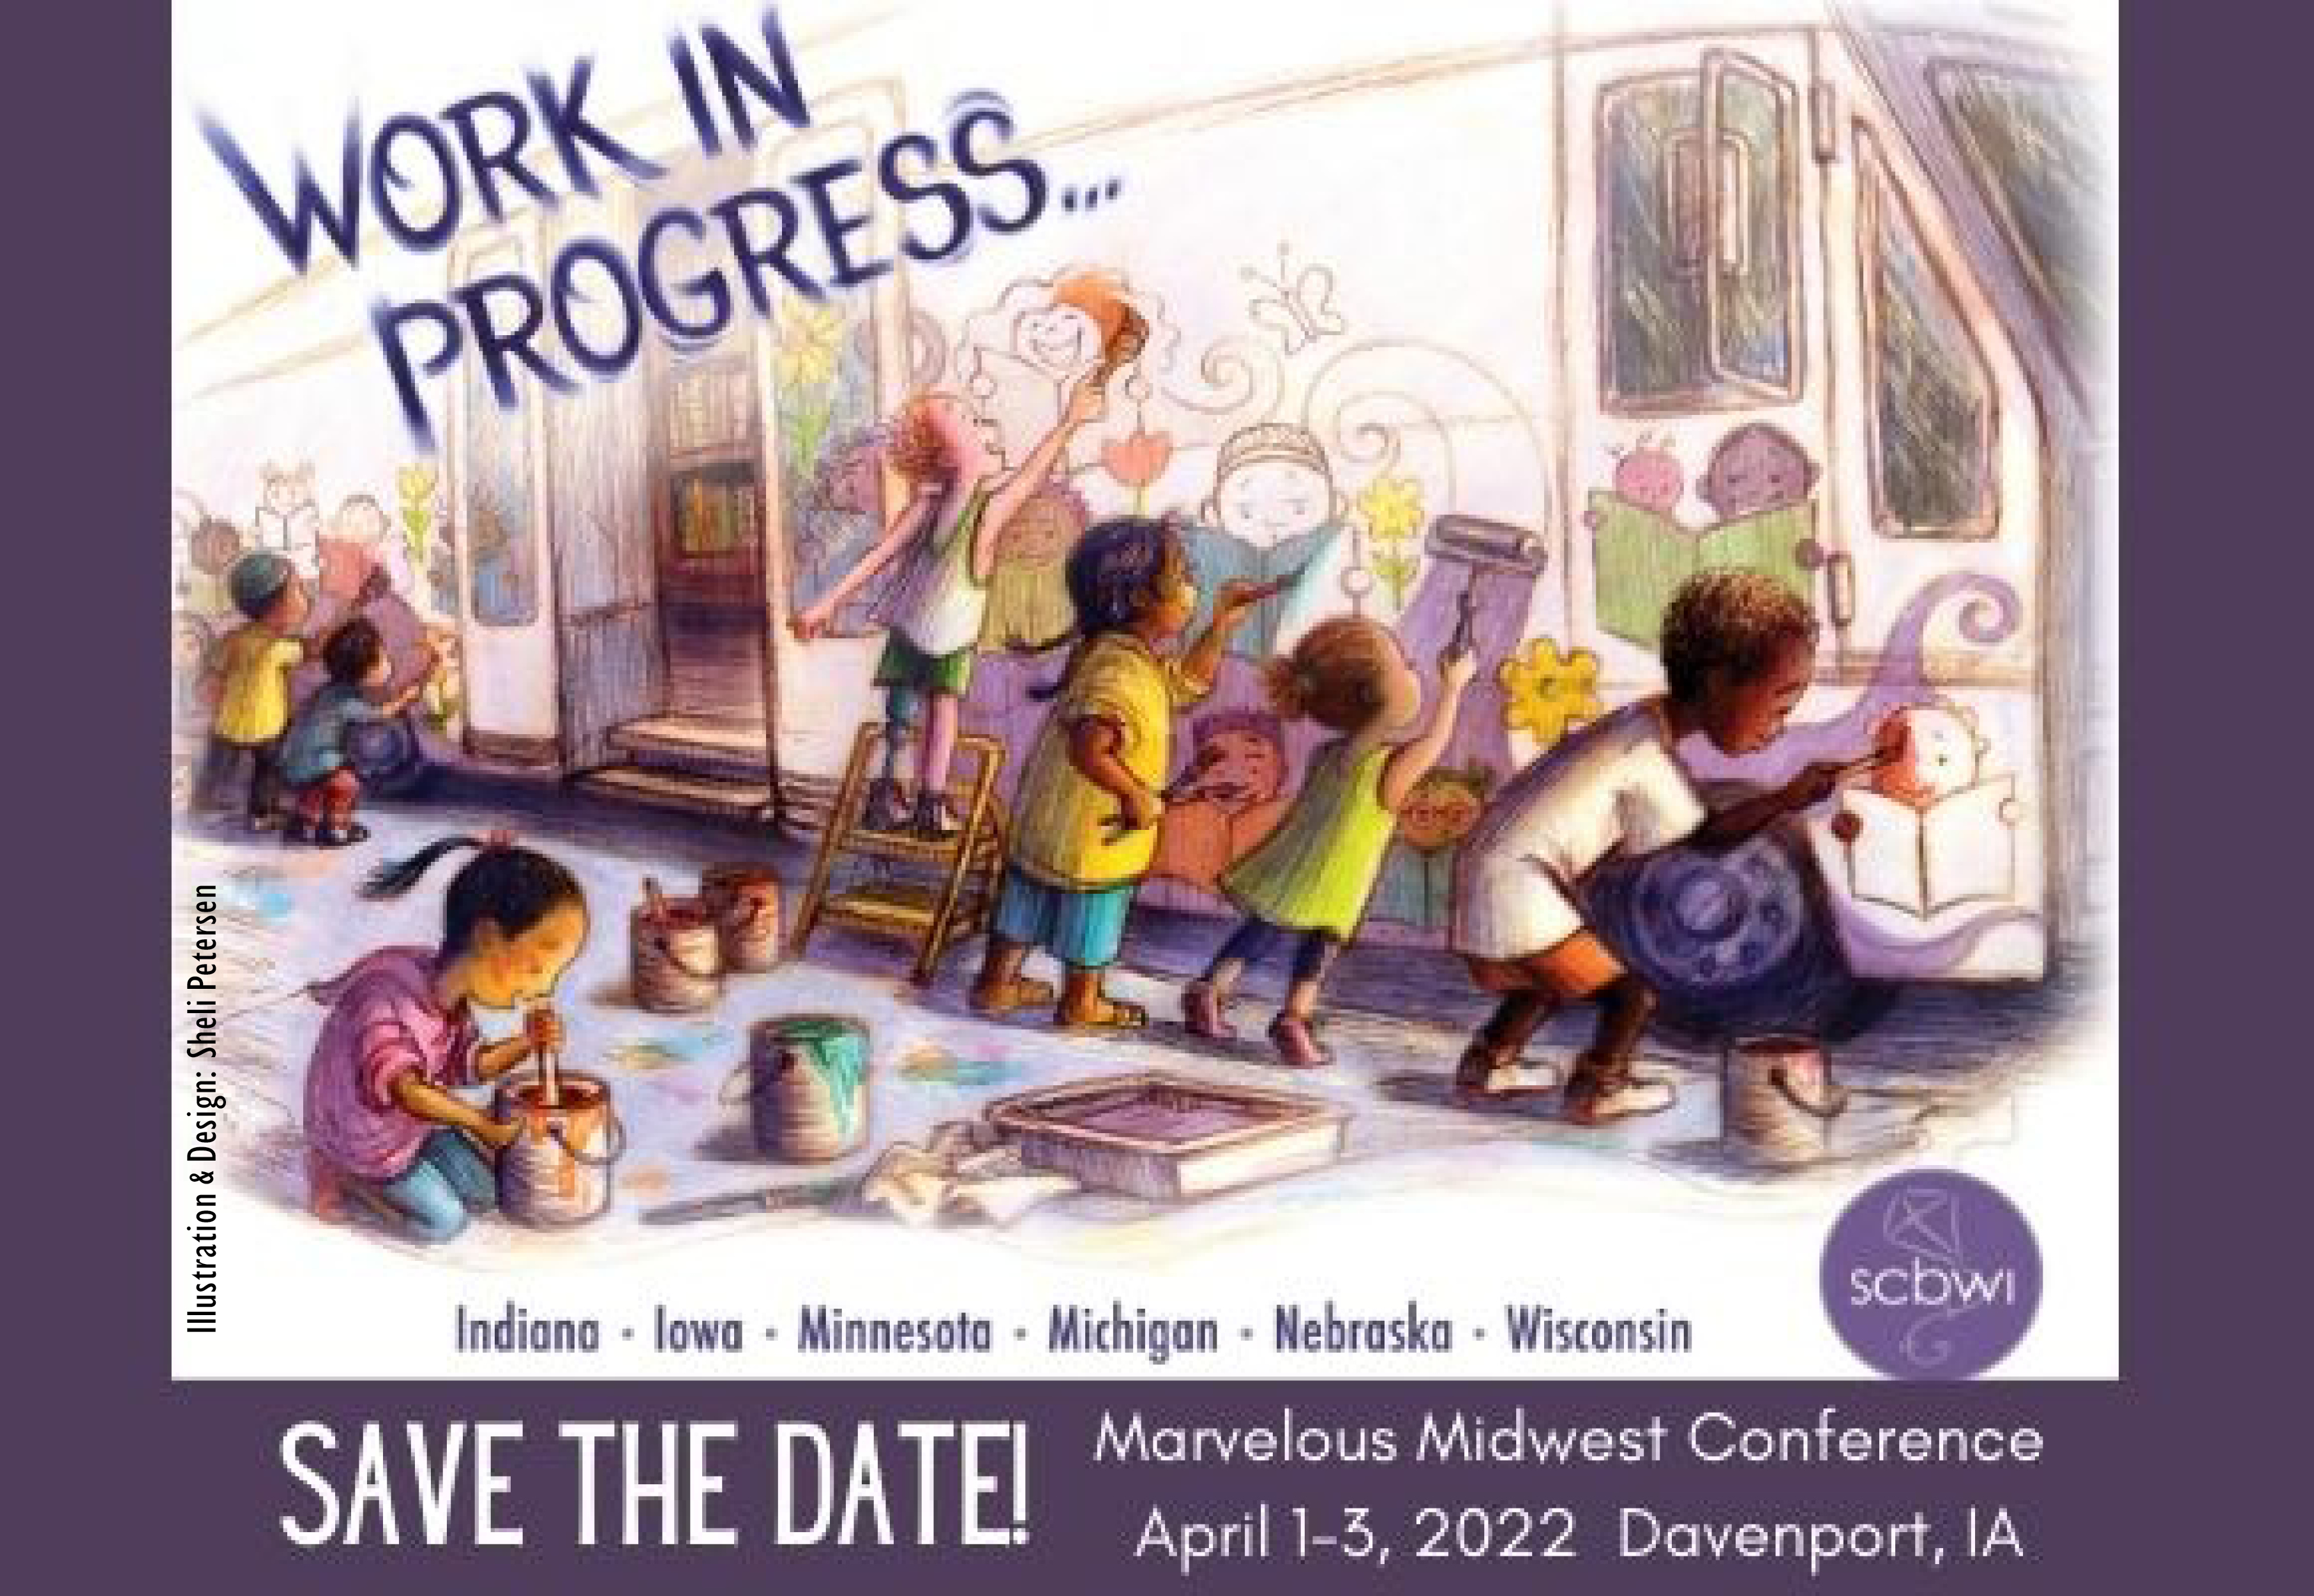 Mark your calendar for the next Marvelous Midwest Conference...coming up in 2022!